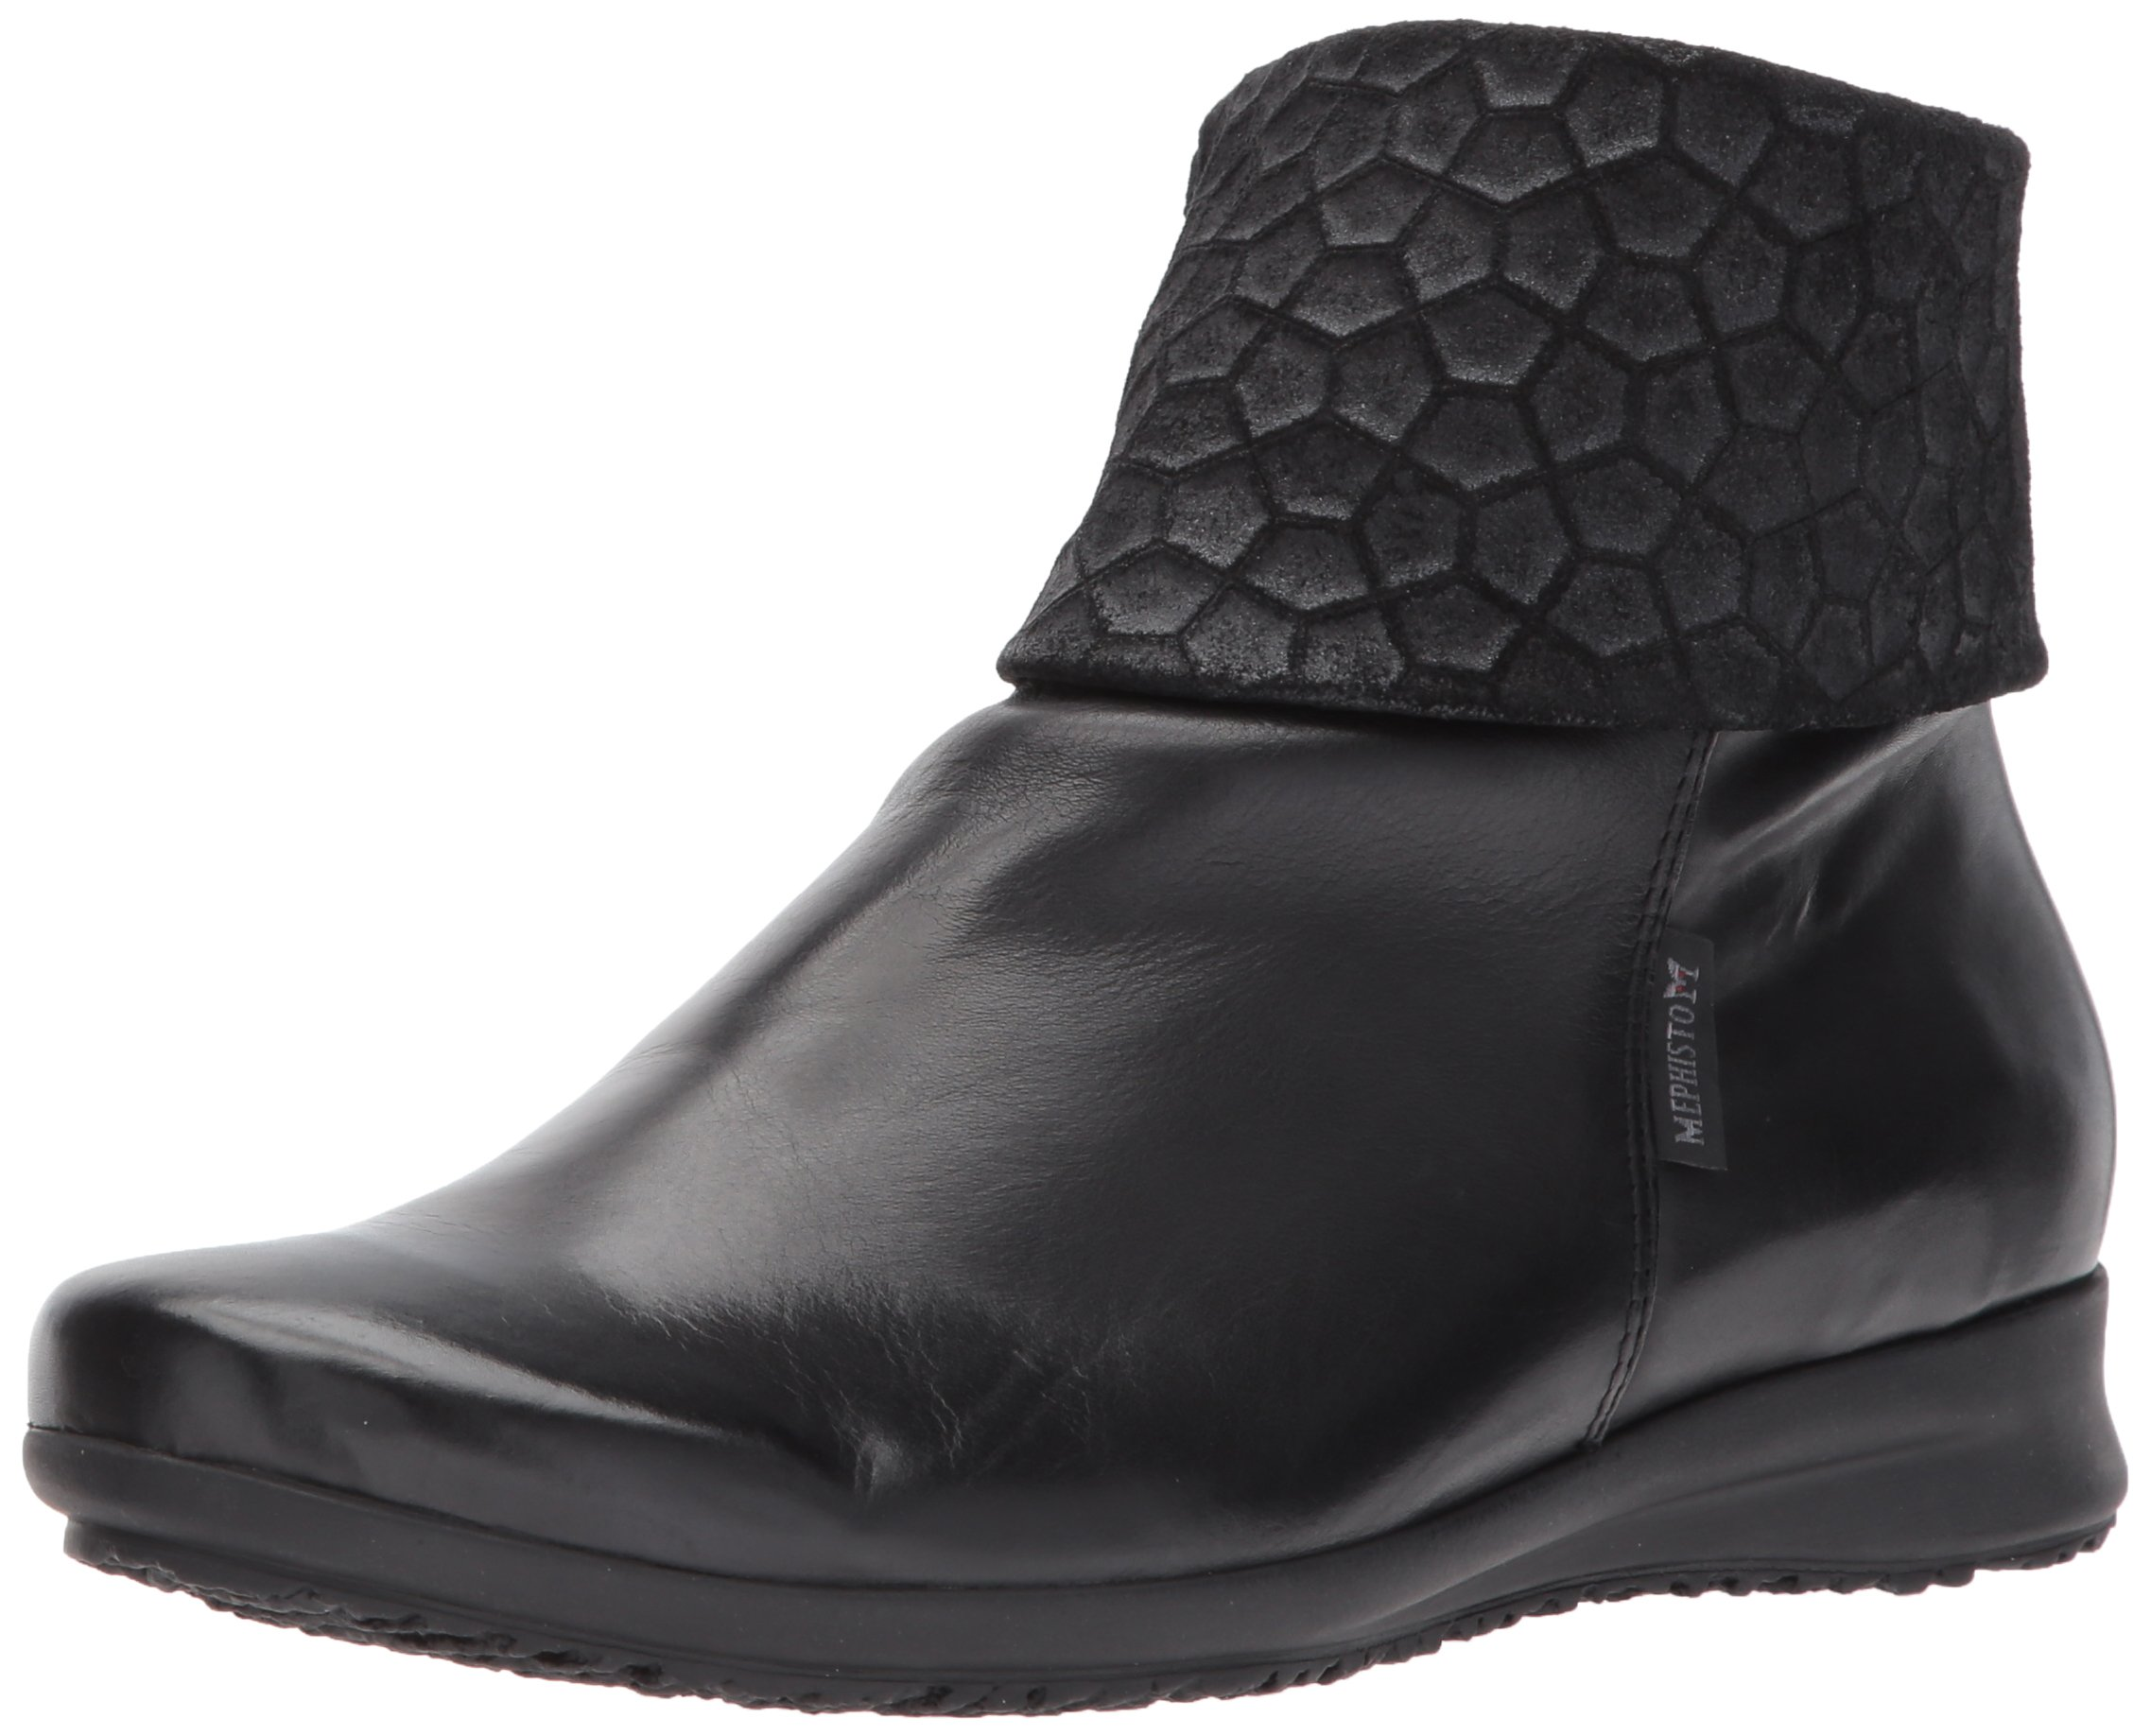 Mephisto Women's Fiducia Ankle Bootie, Black Silk/Cubic, 11 M US by Mephisto (Image #1)